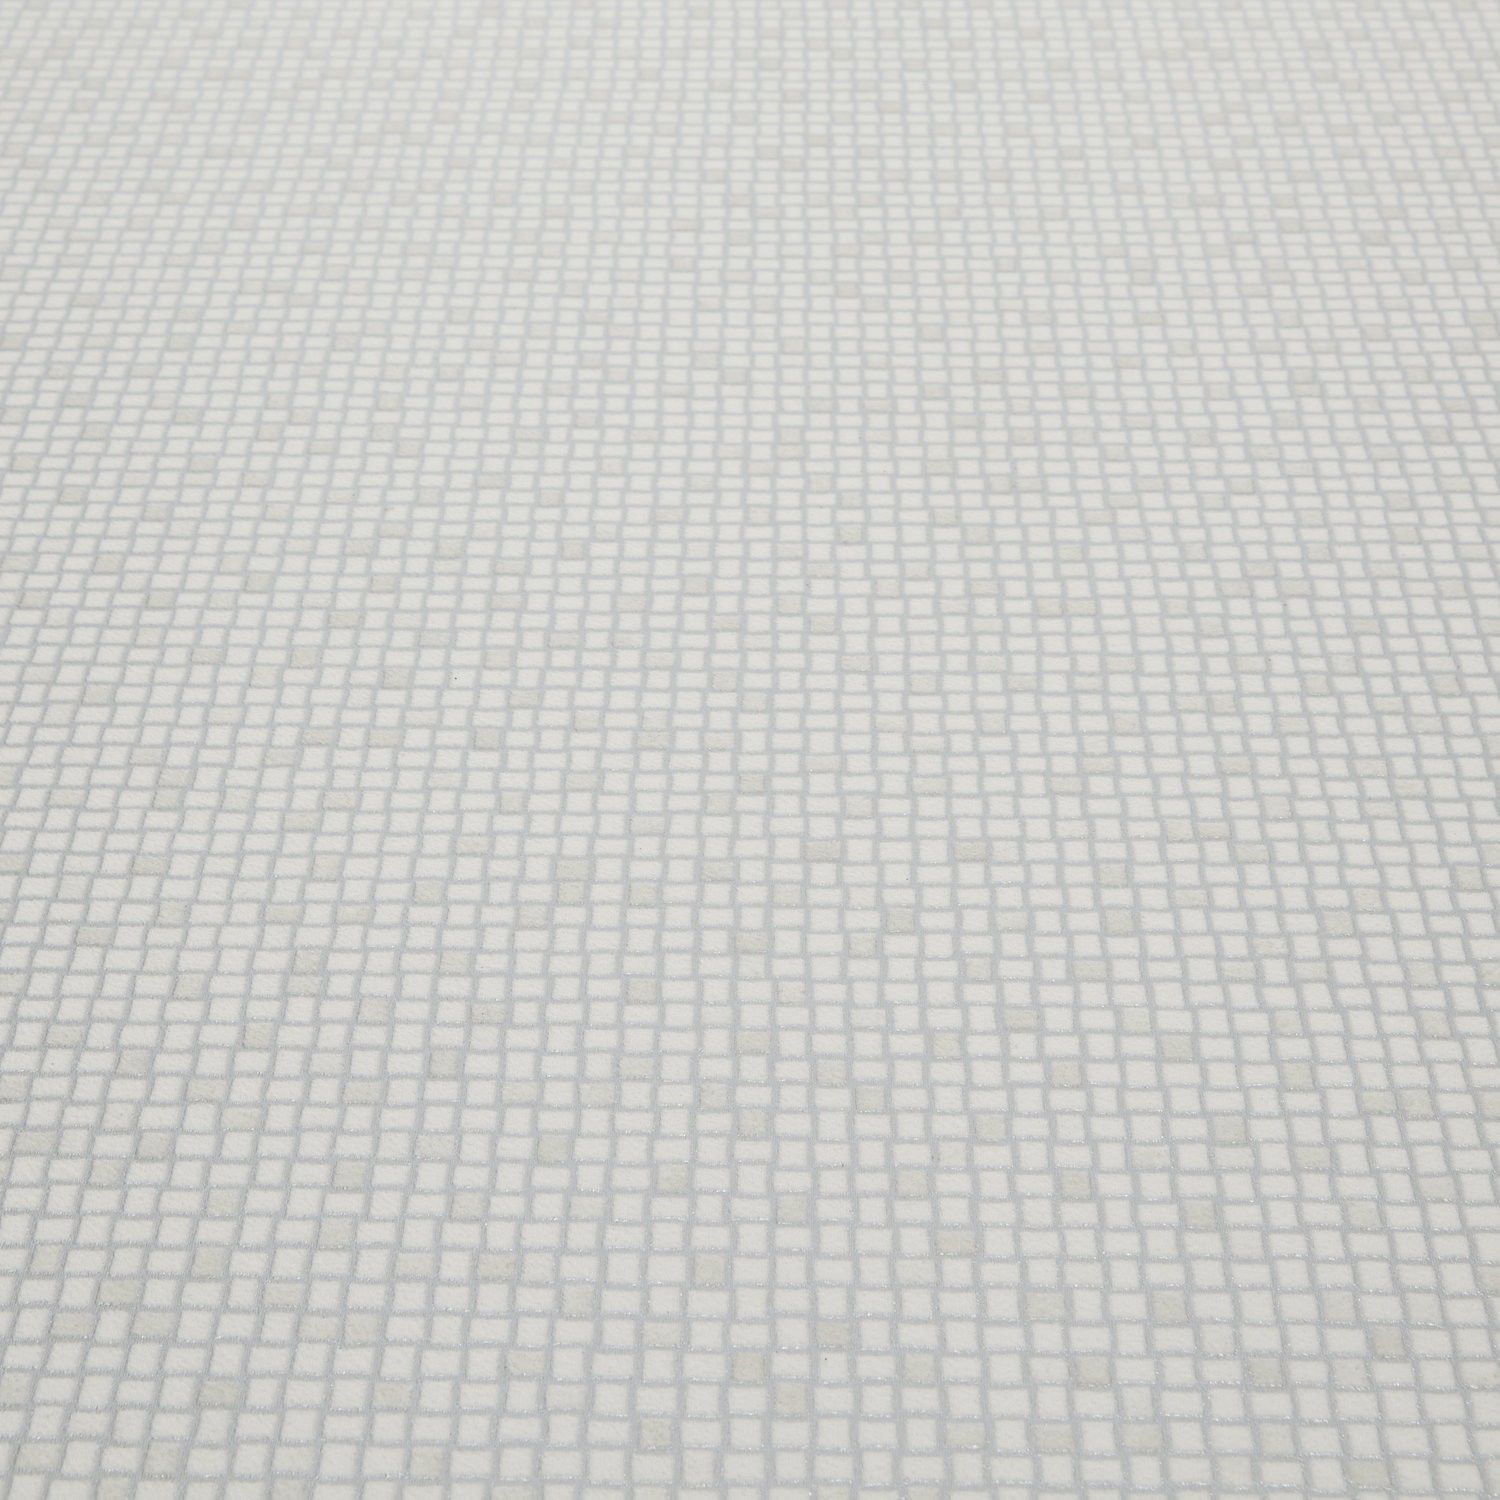 Flooring For Kitchen And Bathroom Mercury 501 Nemo White Mosaic Tile Effect Vinyl Flooring Kitchen